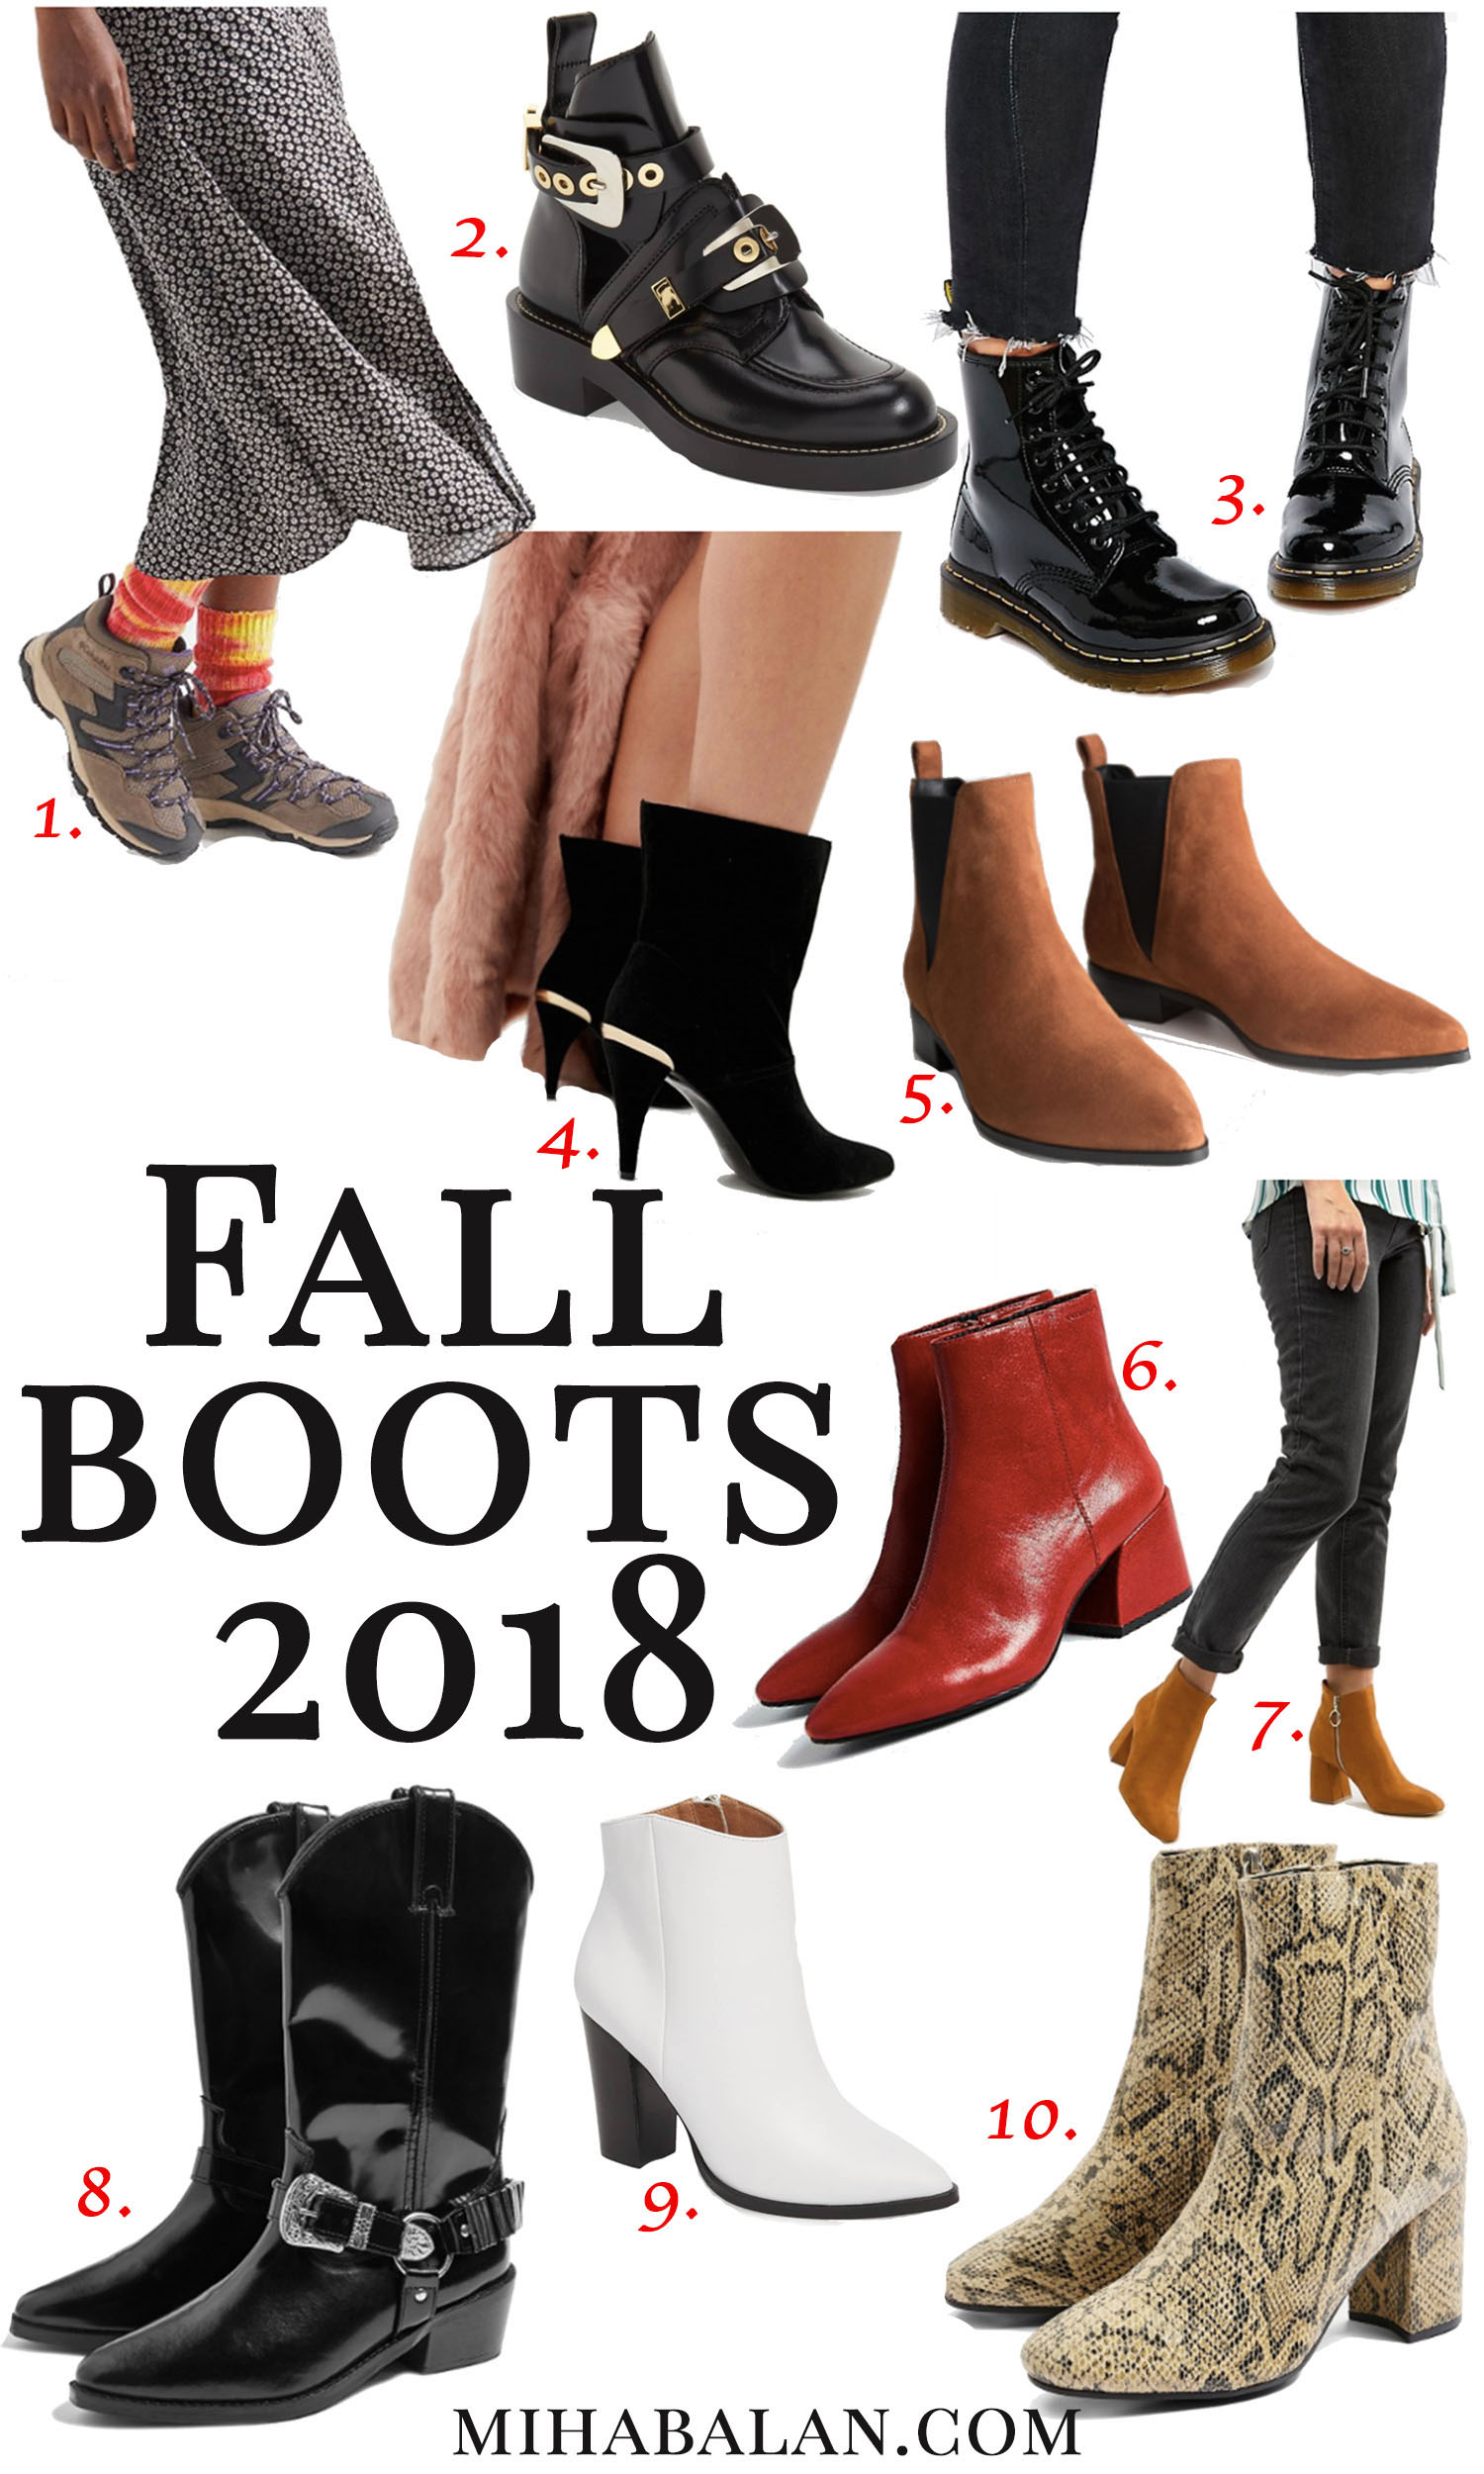 10 pairs of boots for fall, shoes, high heels boots, cowboy boots, flat boots, fall essentials